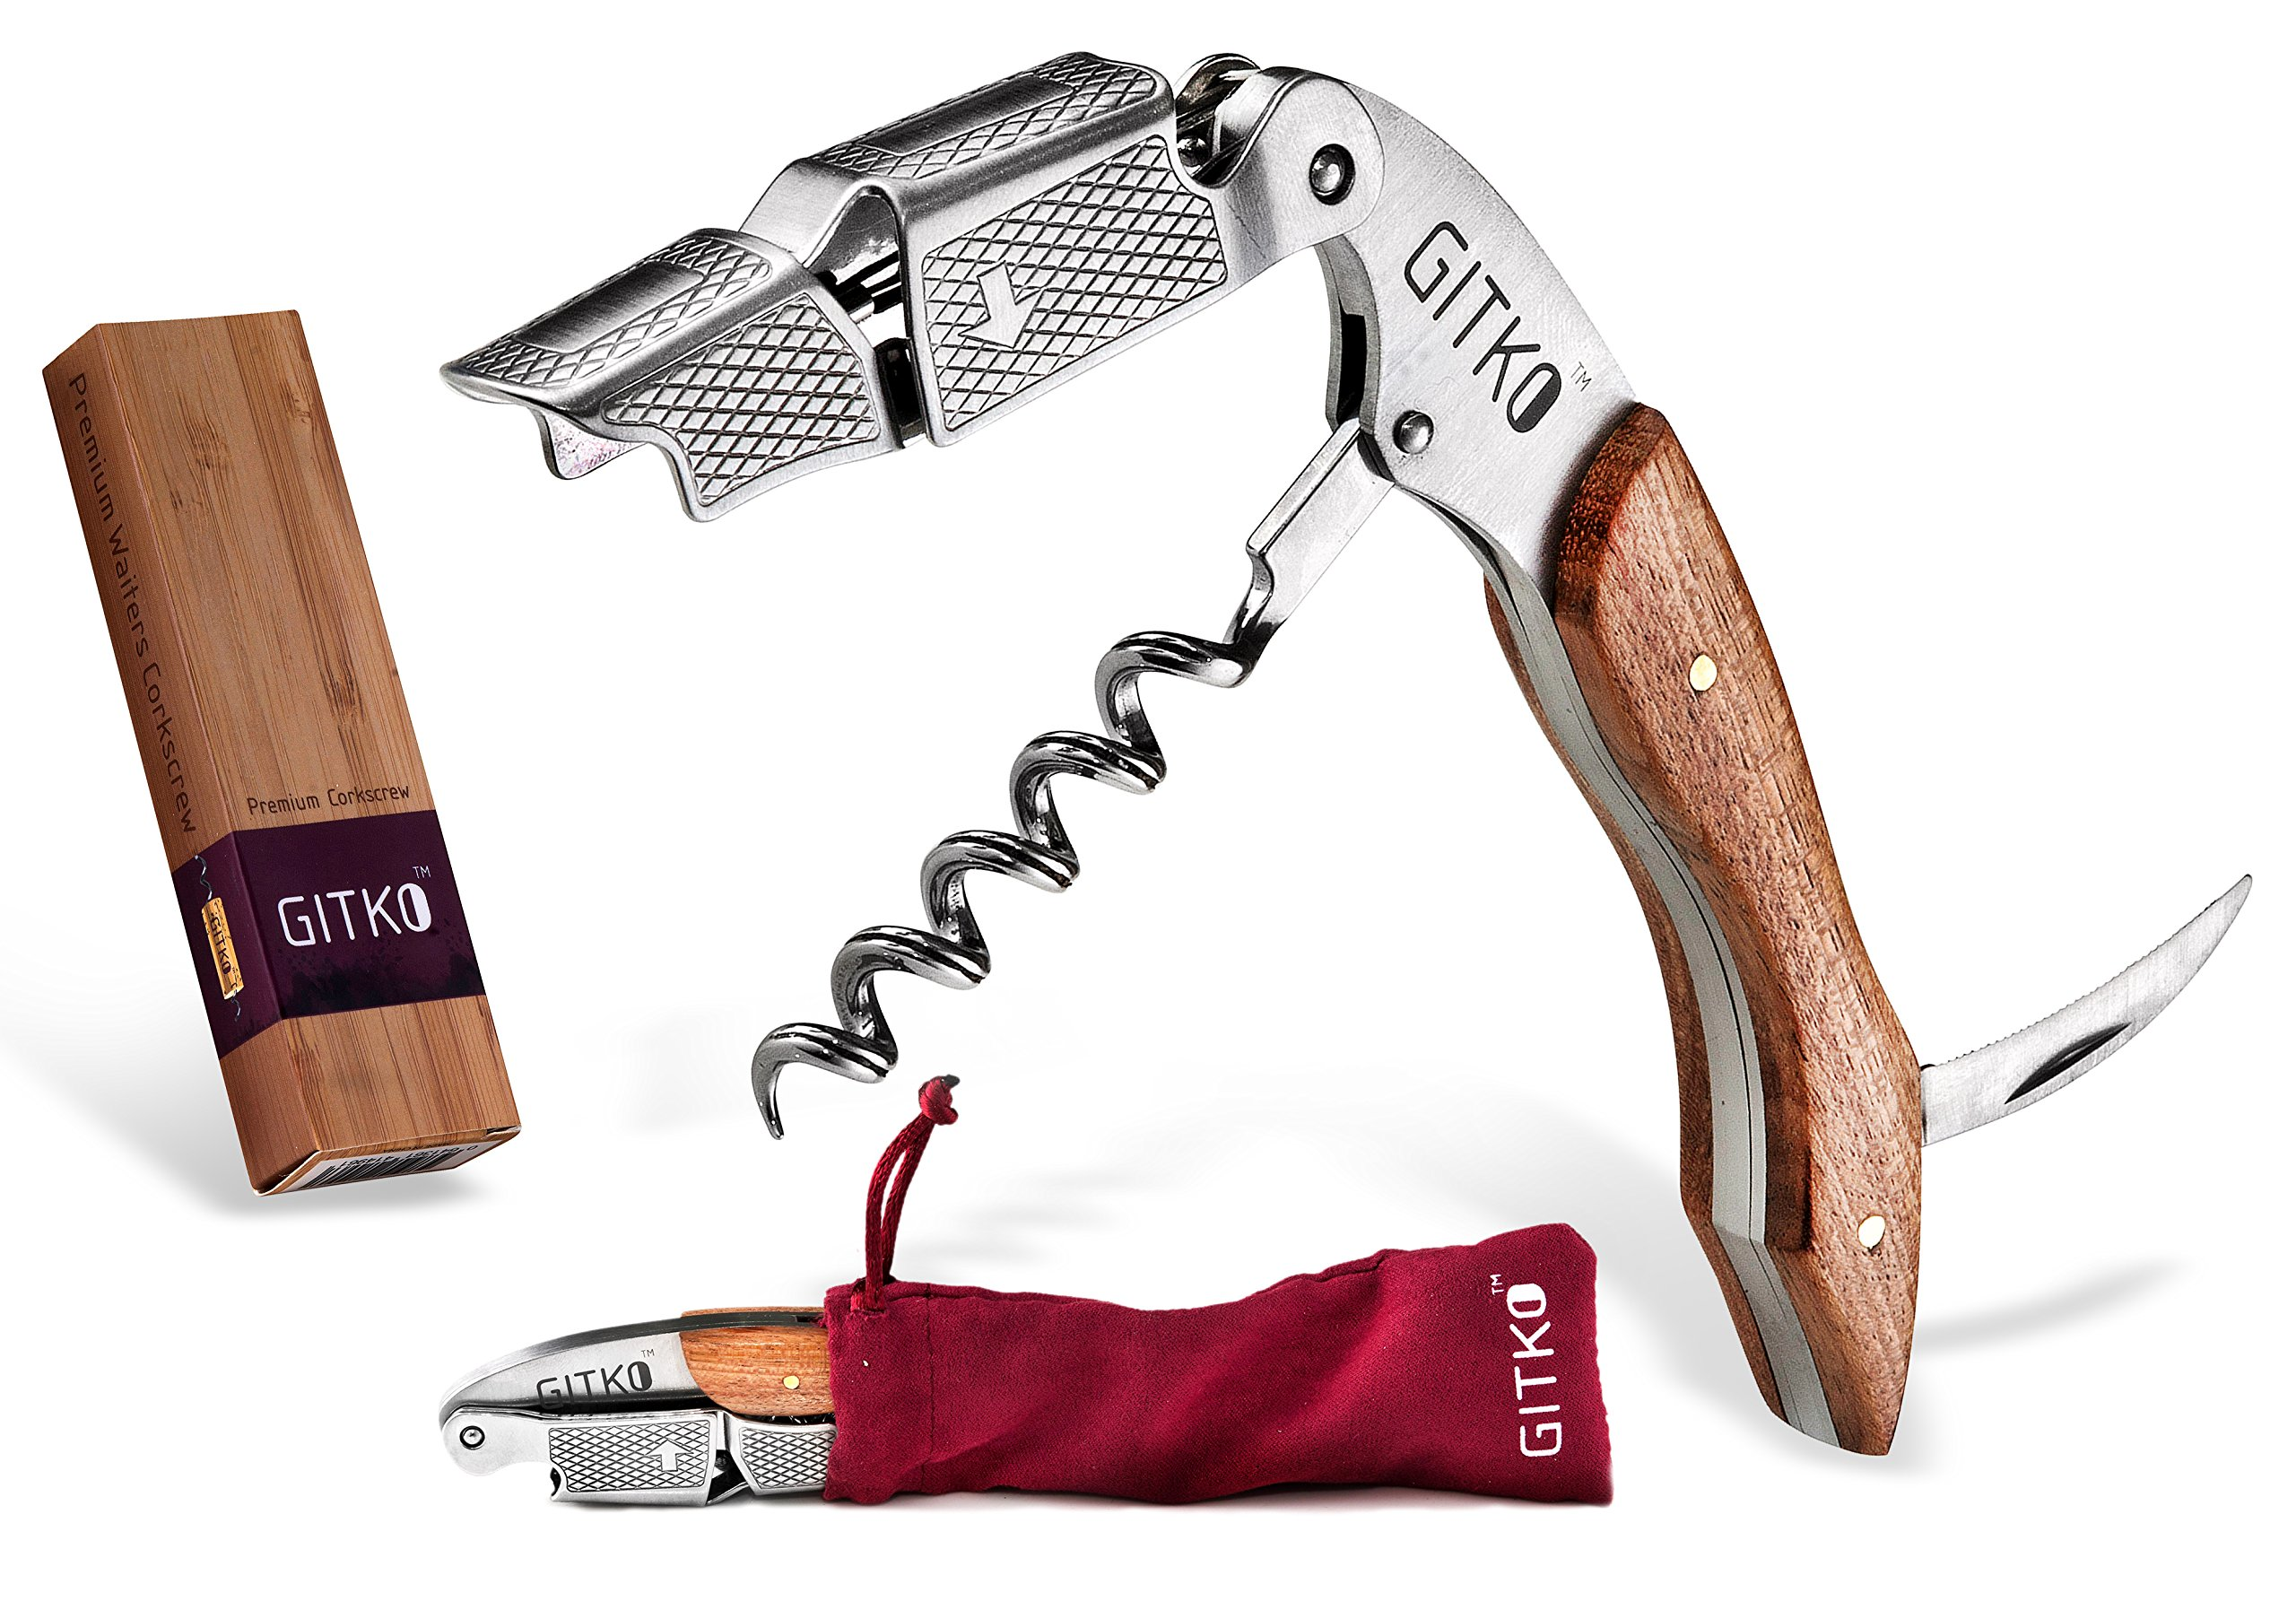 Waiters Corkscrew By Gitko -With a Comfortable Rosewood handle – Wine And Beer Bottle Opener For Bartenders, Waiters, –With A Stainless Steel Wine Key Foil Cutter - With a Nice Pouch Included, 3 Pack by GITKO (Image #1)